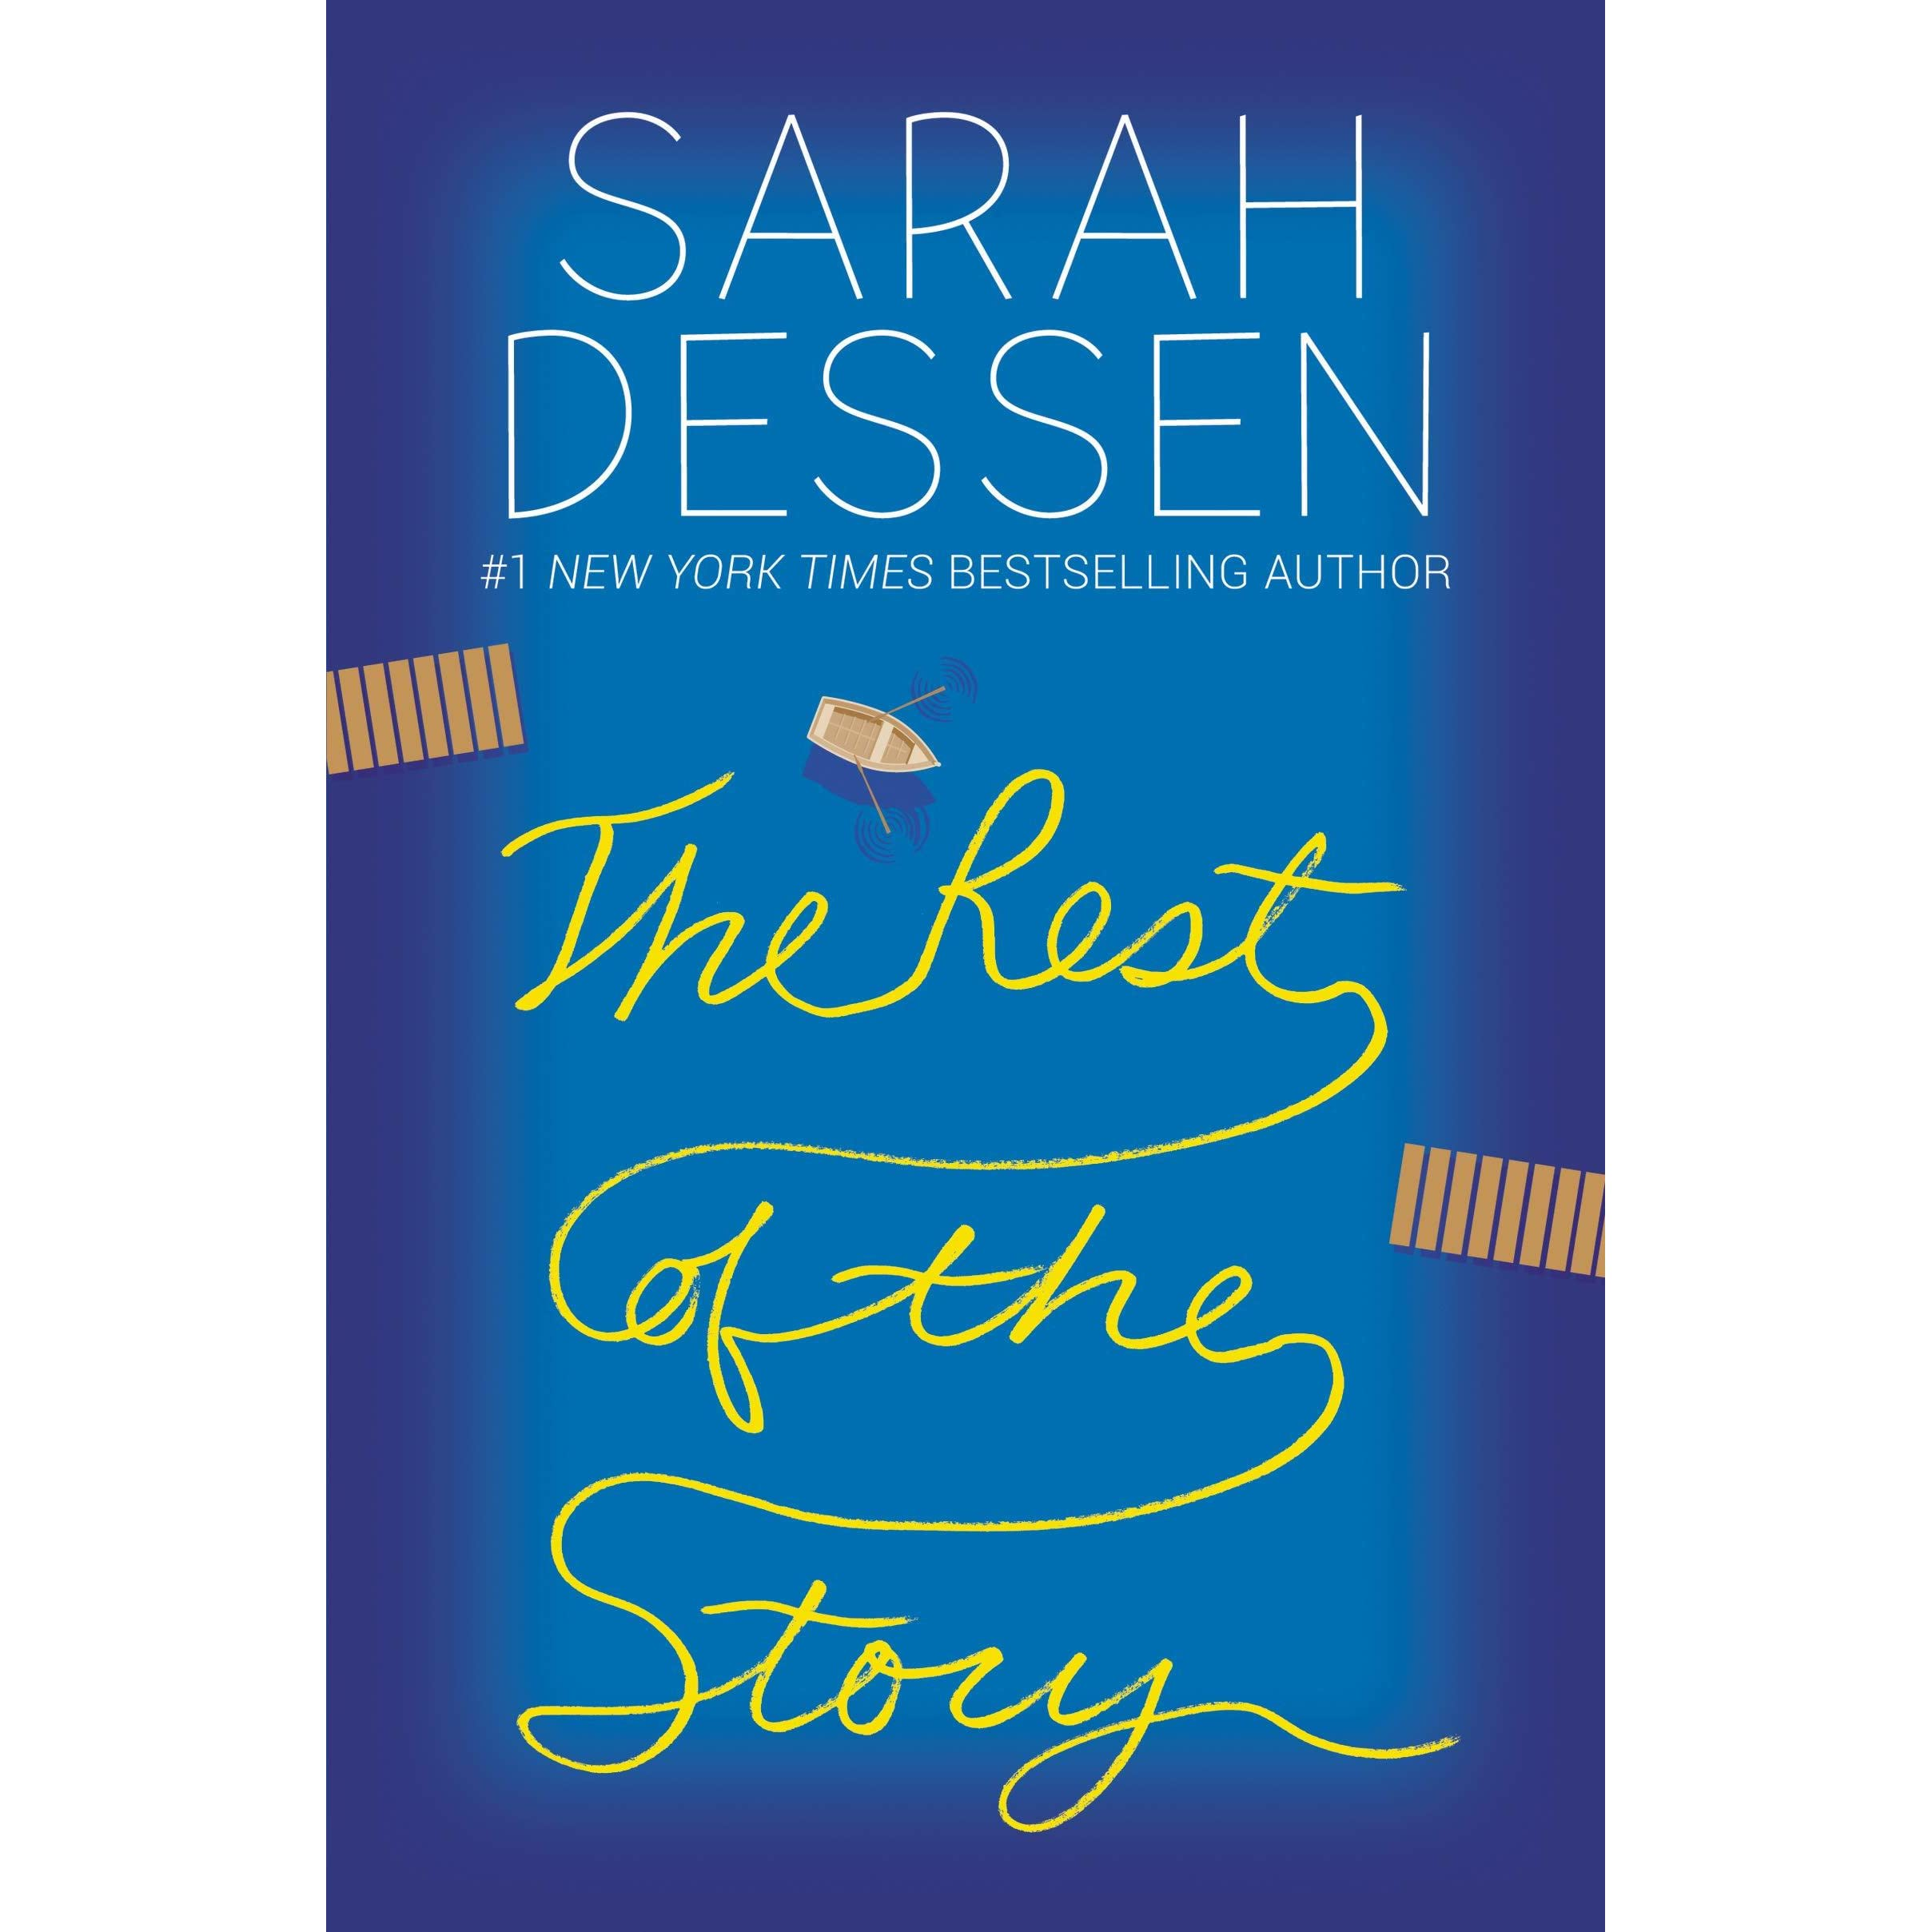 Image result for The Rest of the Story Sarah Dessen